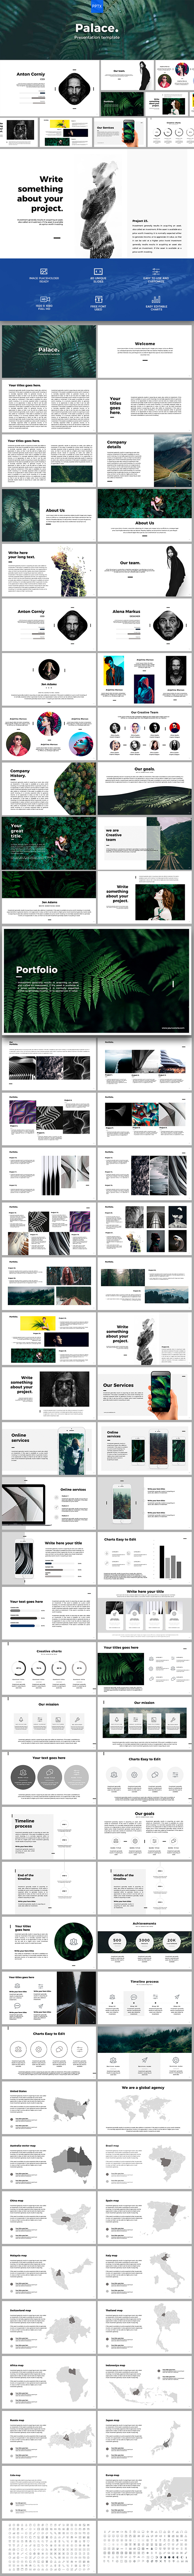 Palace Powerpoint - PowerPoint Templates Presentation Templates